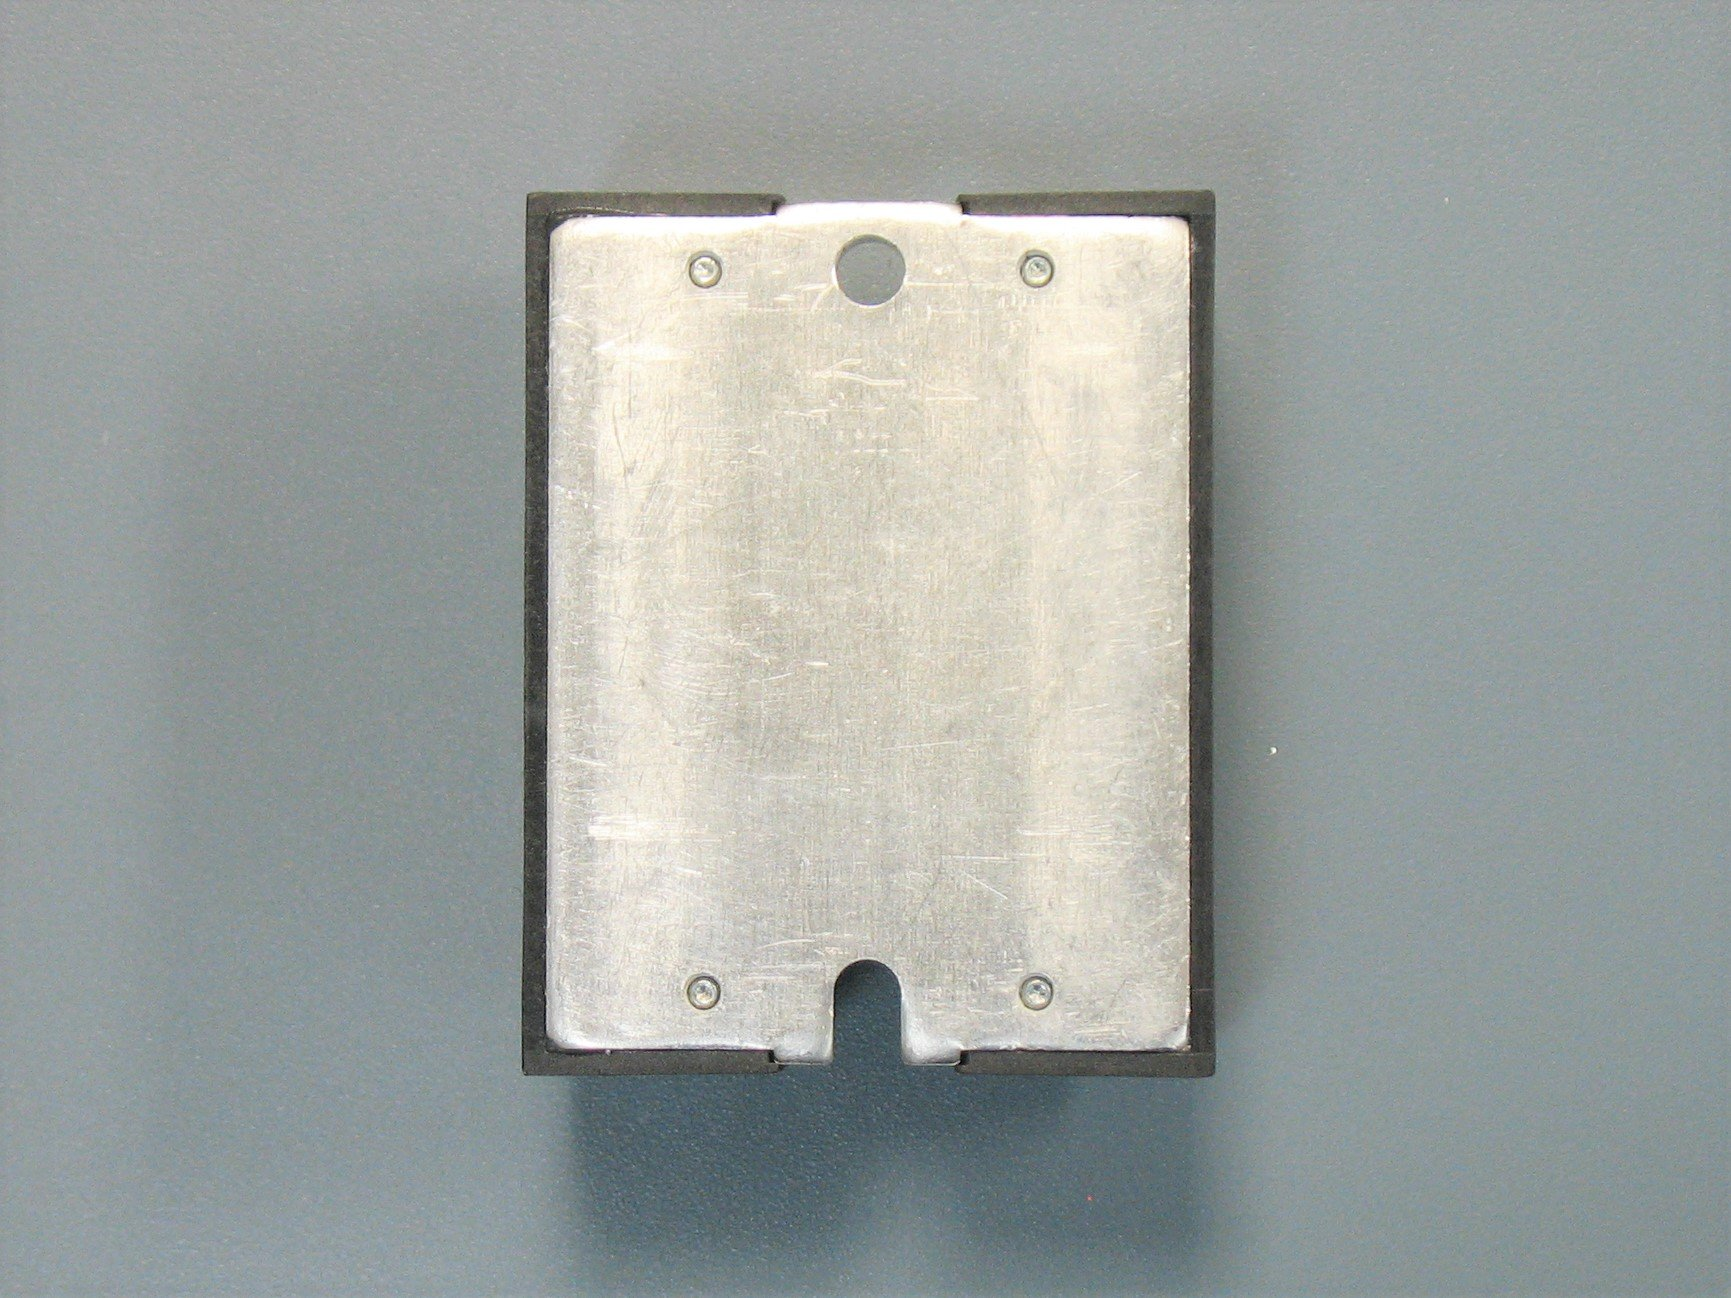 the back view of a solid-state relay